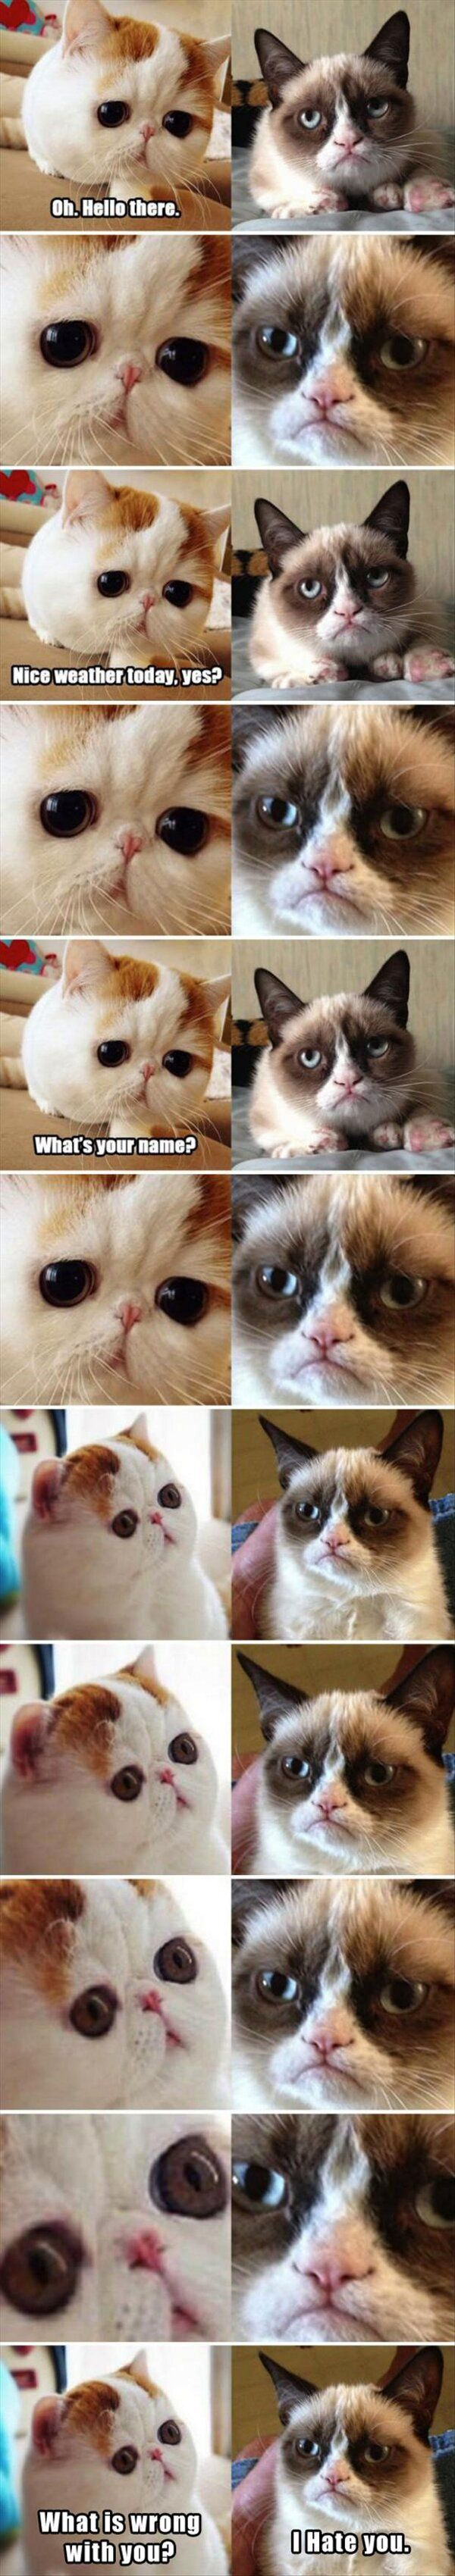 Best Angry Cat Memes Ideas On Pinterest Grumpy Cat Humor - 17 cats that are angry grumpy and fed up with everything